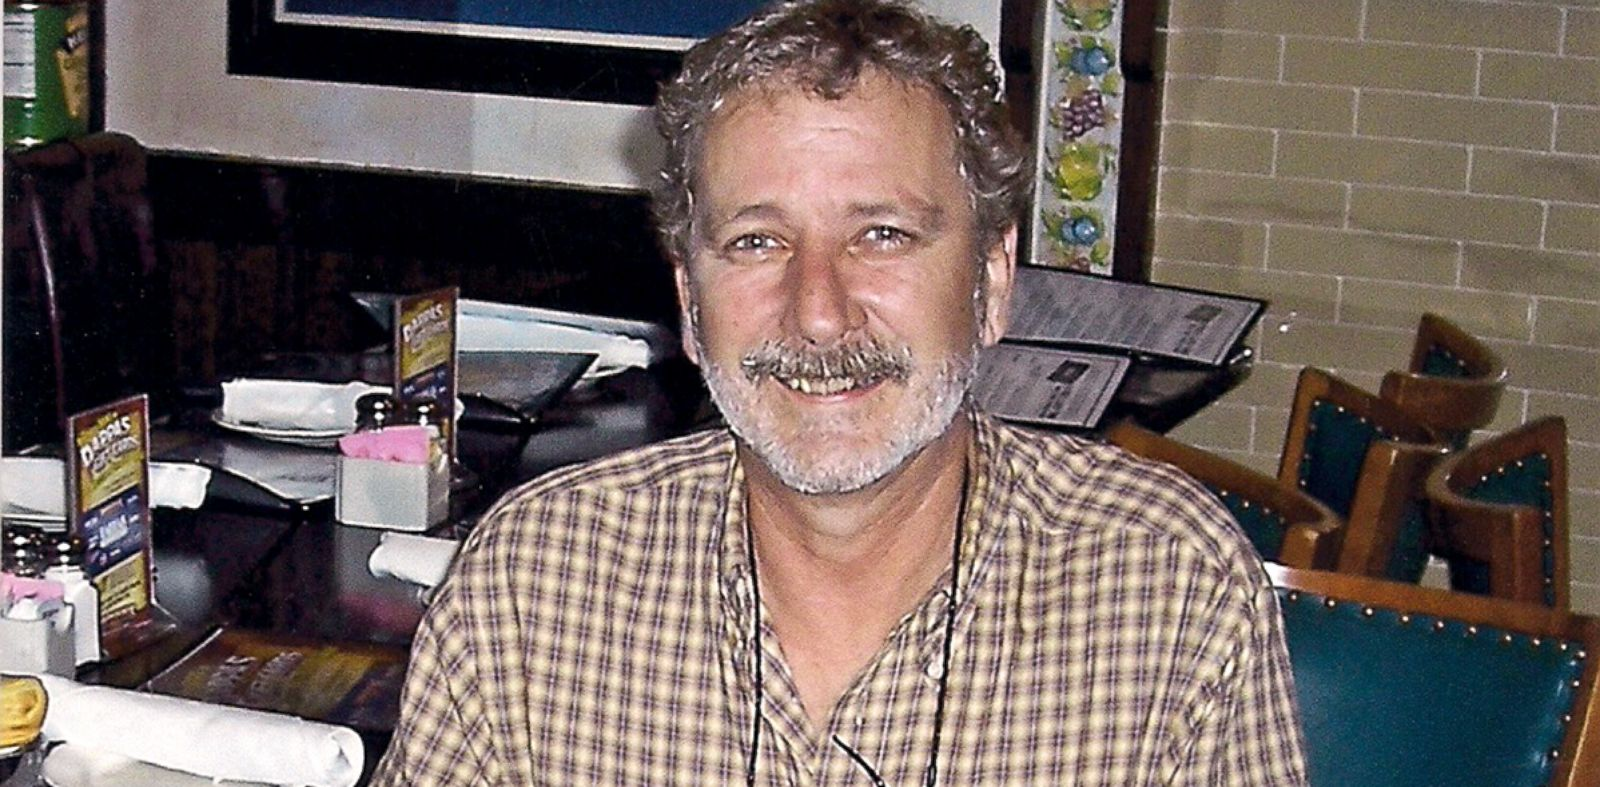 PHOTO: Police found Greg Fleniken dead in his room at the Elegante Hotel in Beaumont, Texas on Sept. 15, 2010.